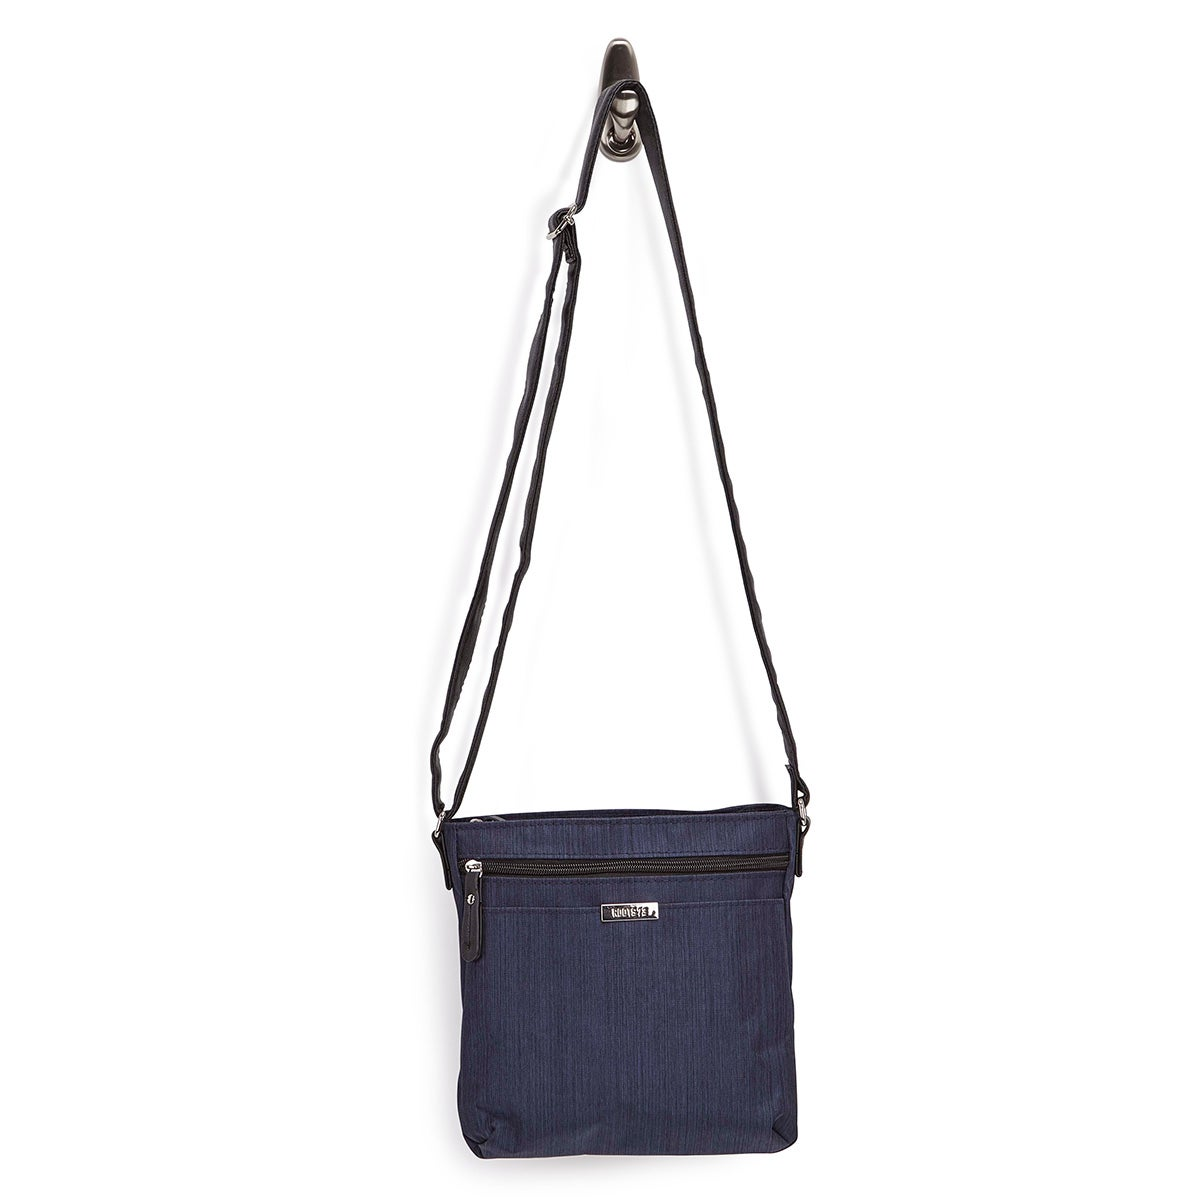 Lds nvy top zip cross dye crossbody bag